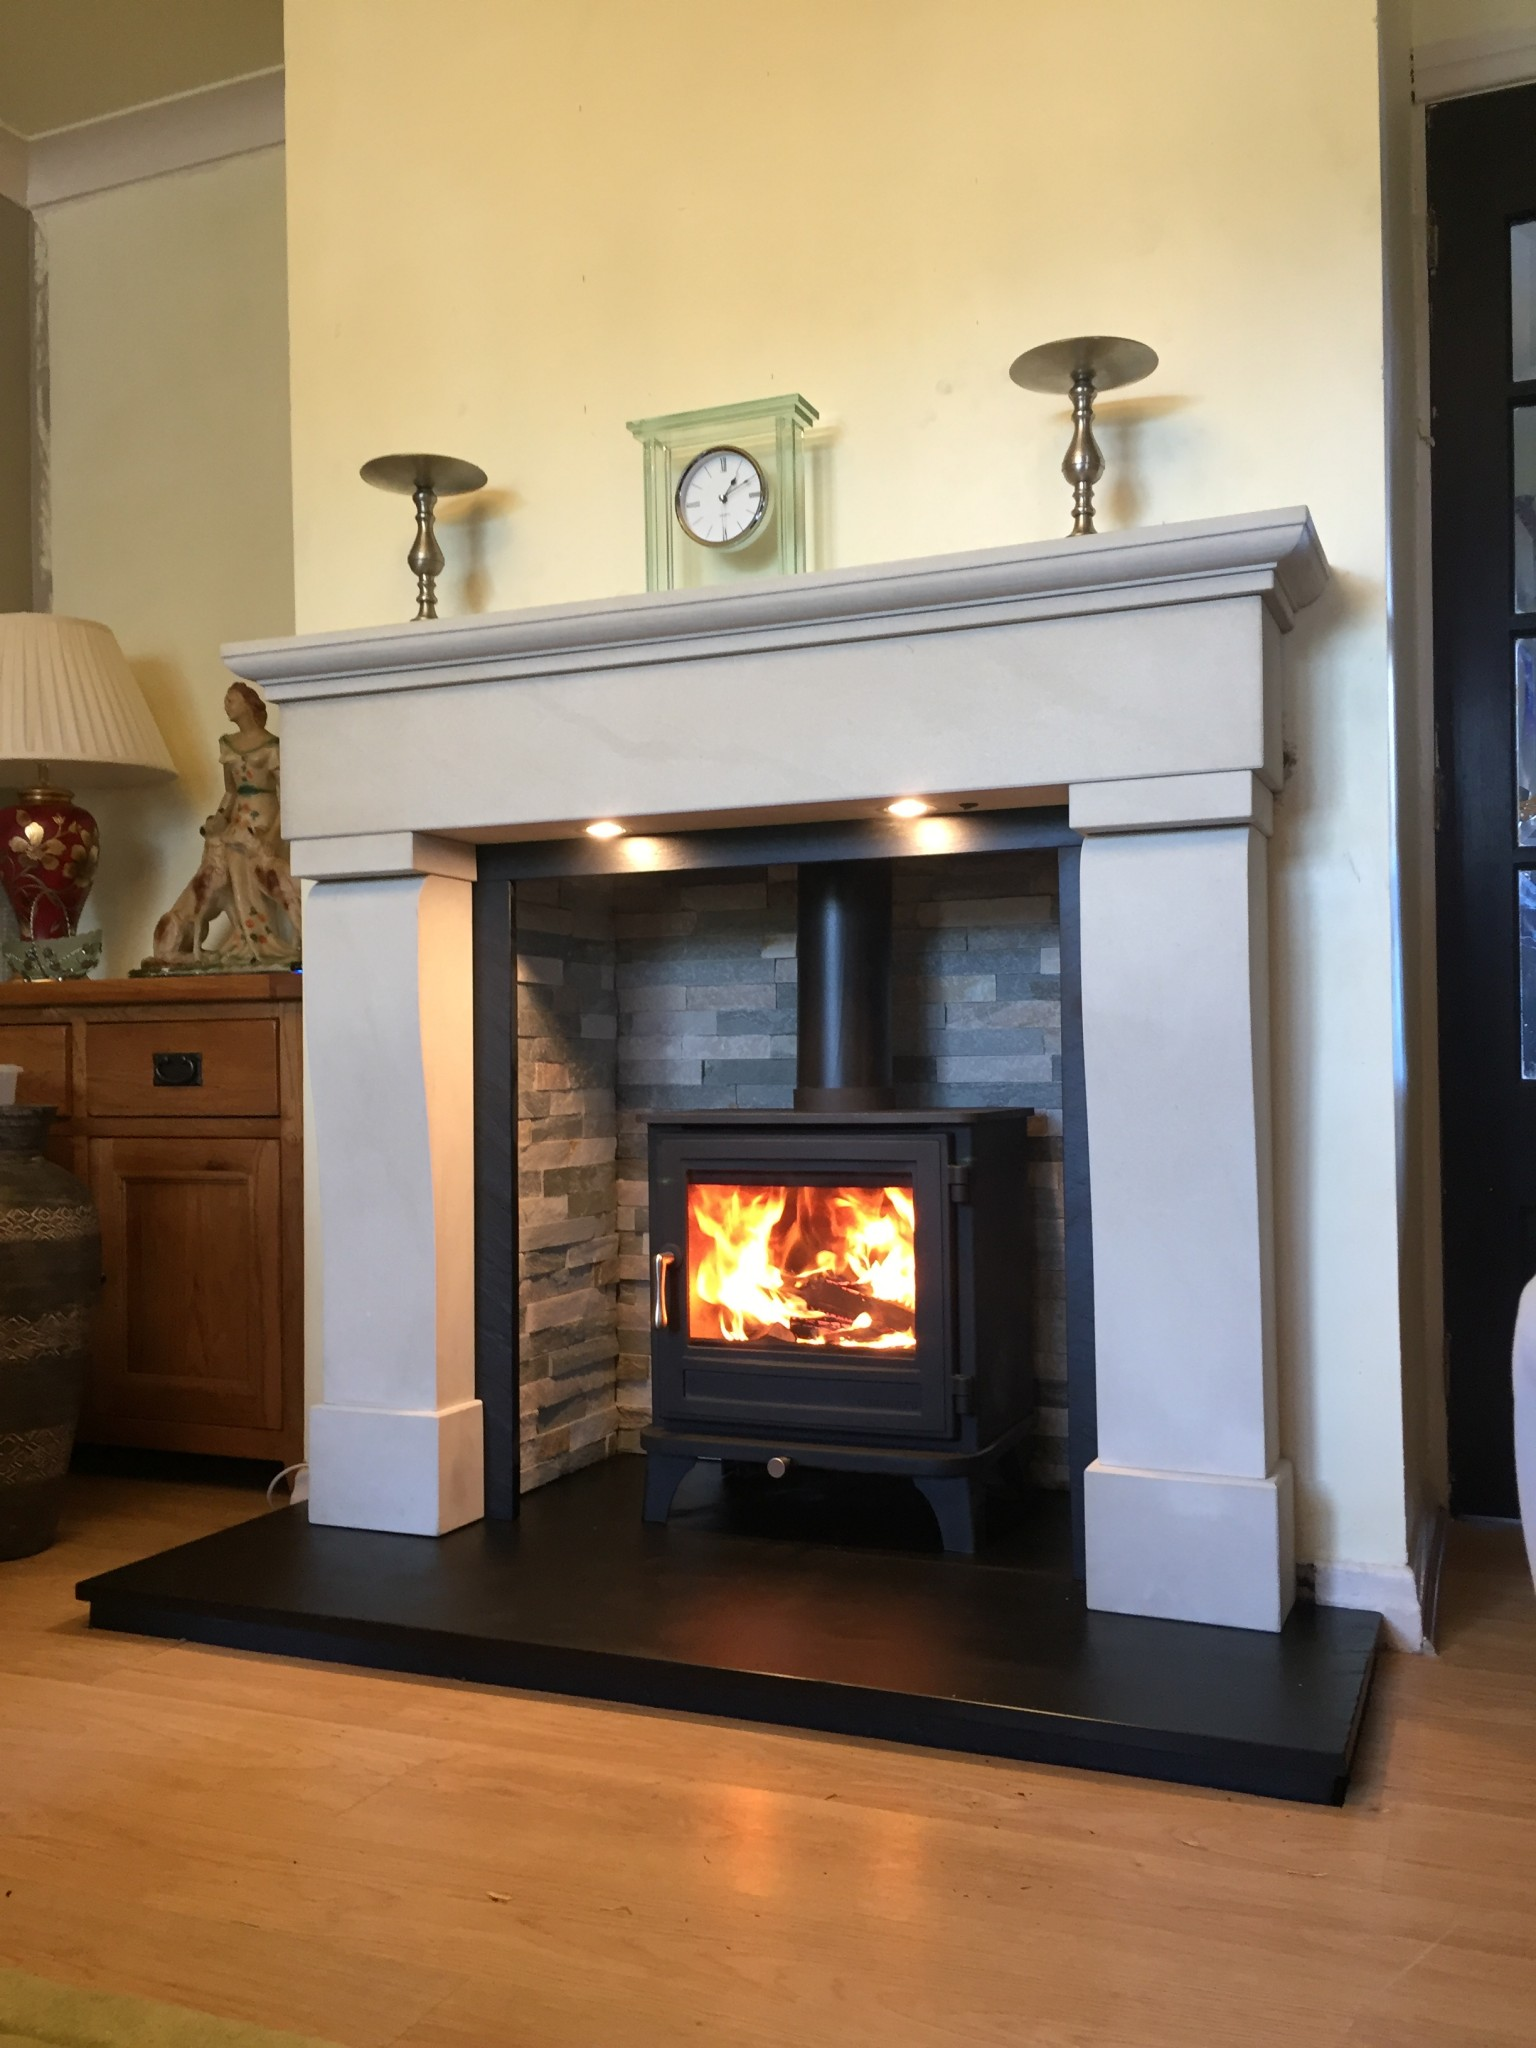 5 heating options for old houses old house restoration for Heating options for homes without gas